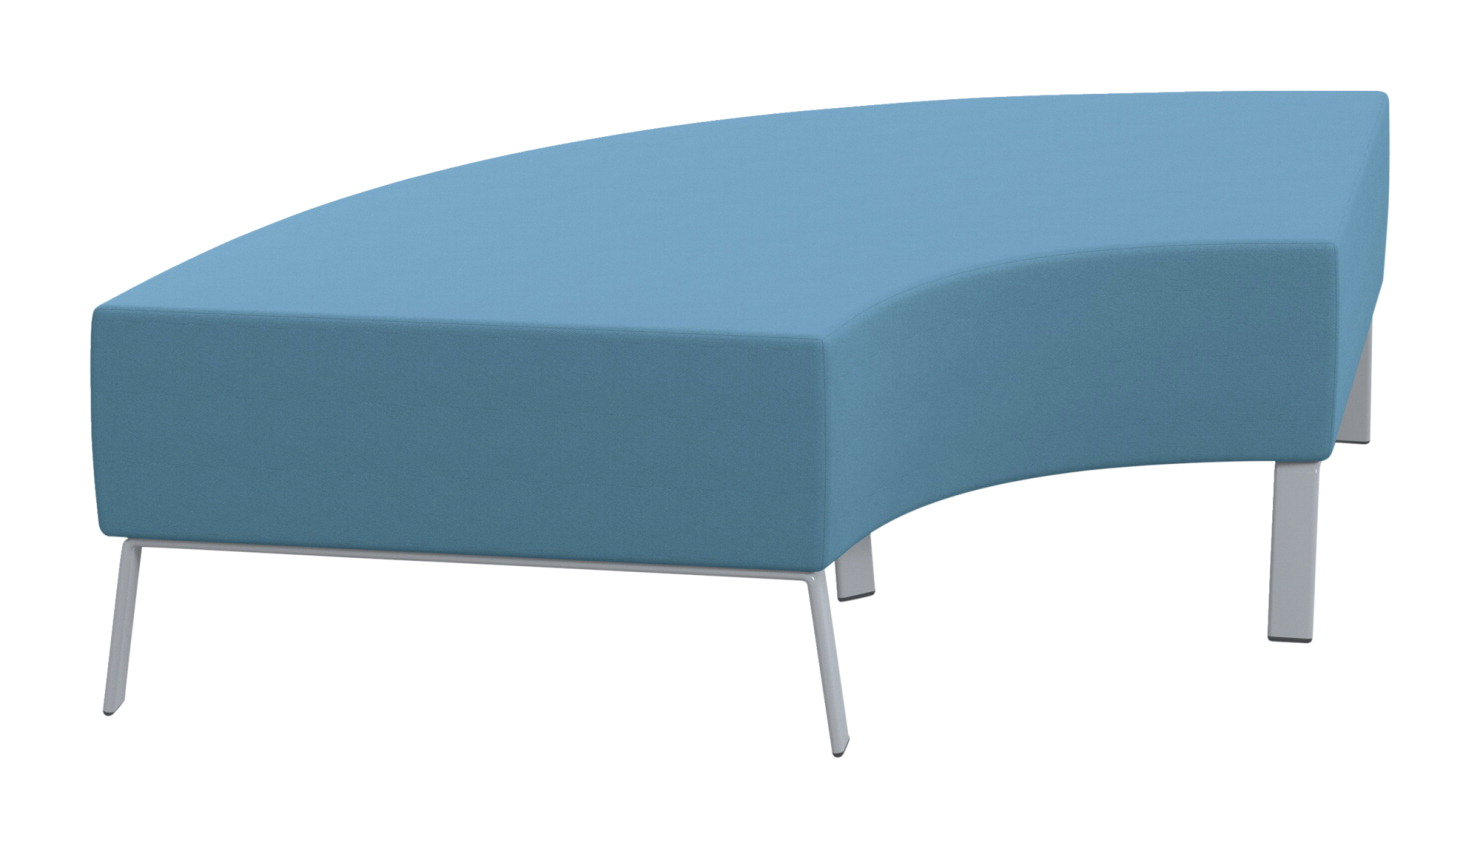 Classroom Select Soft Seating 90 Degree Bench, 71 x 32 x 18 Inches, Various Options